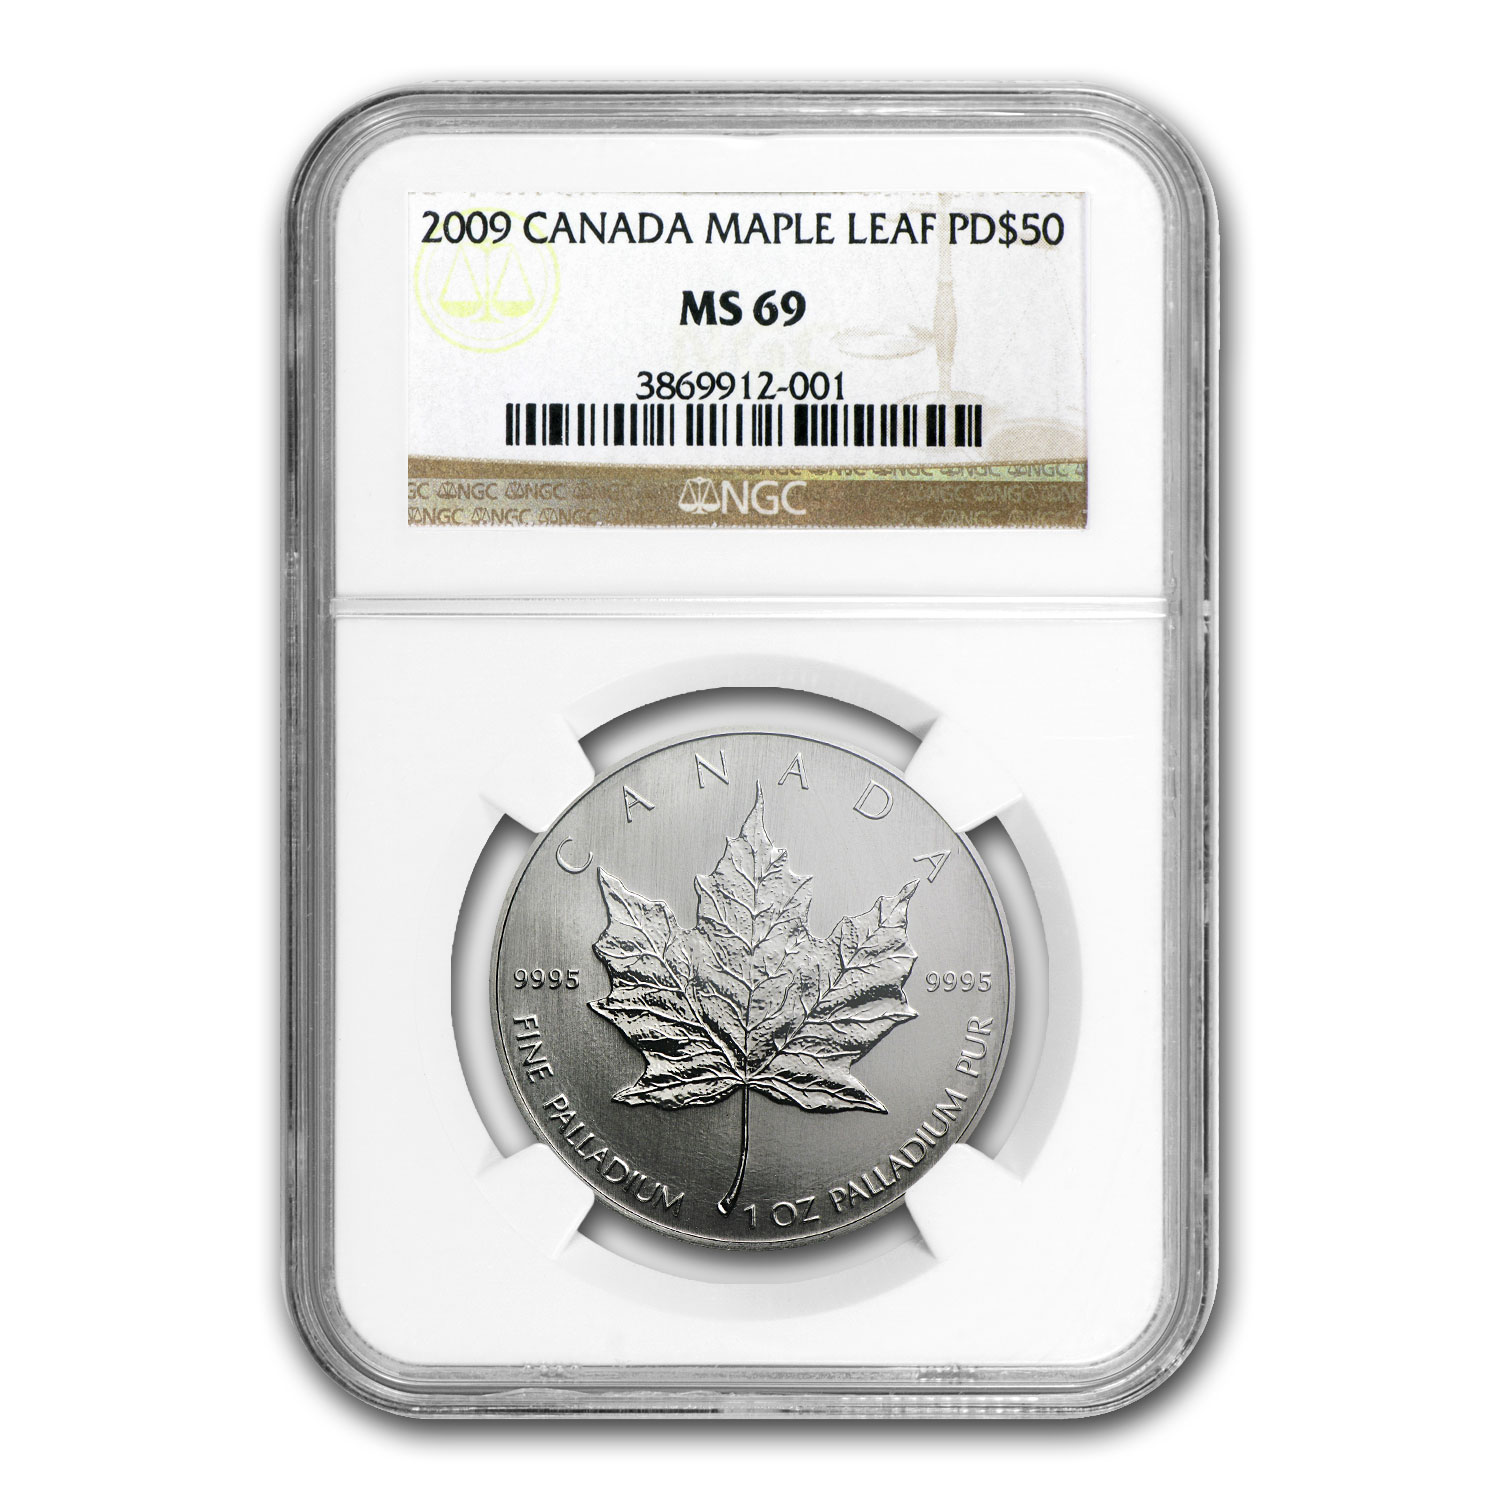 2009 Canada 1 oz Palladium Canadian Maple Leaf MS-69 NGC